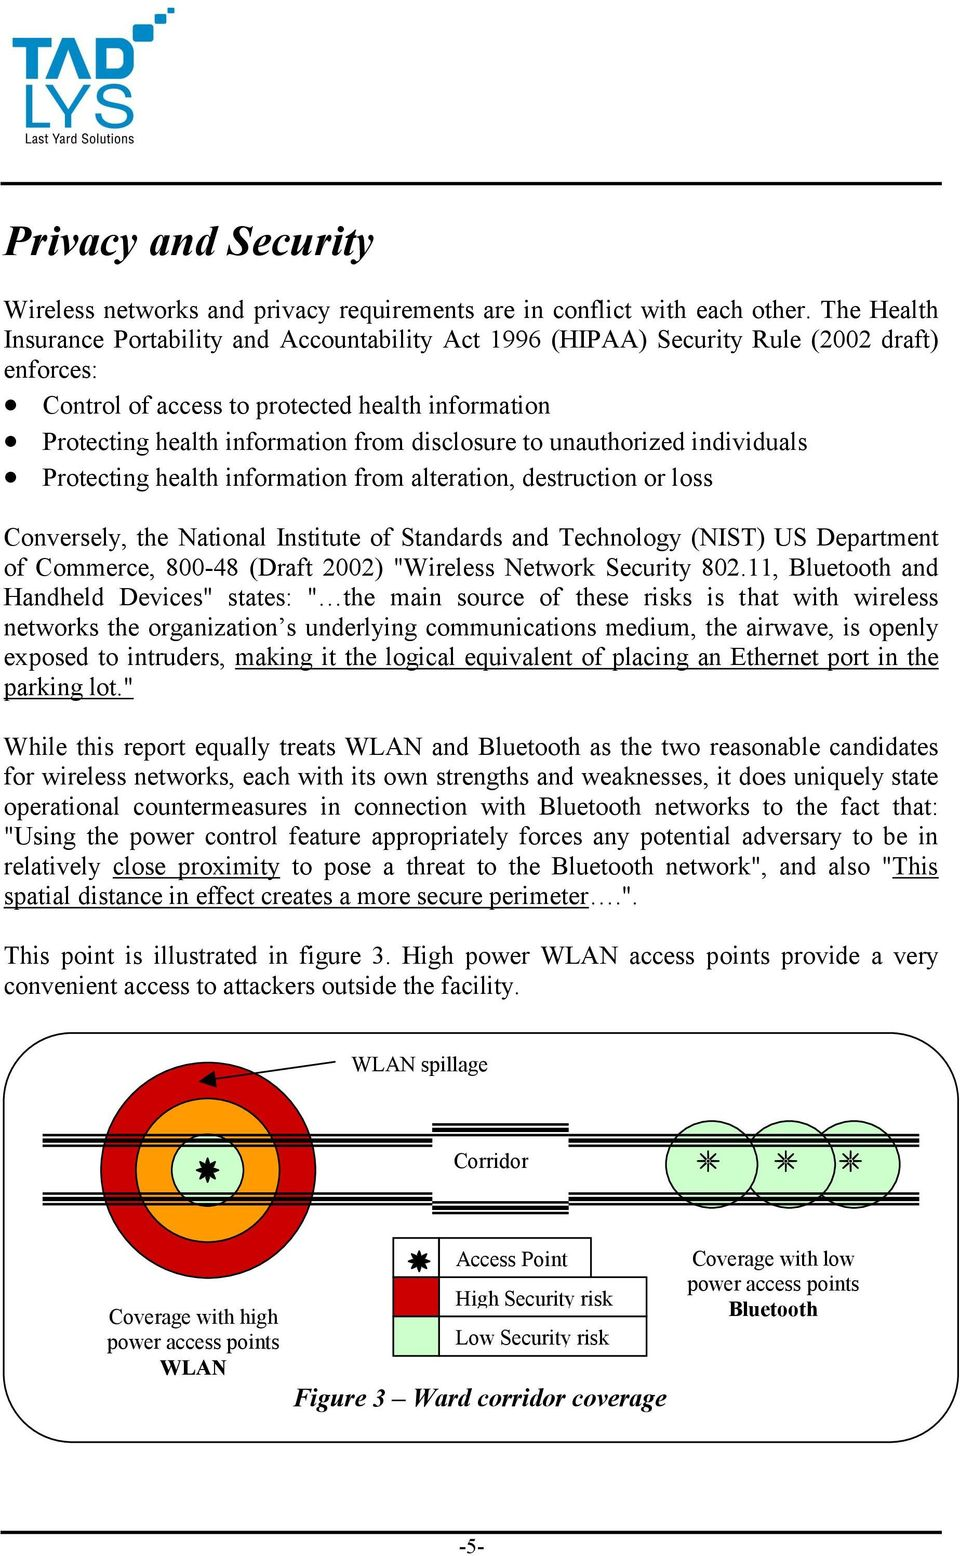 disclosure to unauthorized individuals Protecting health information from alteration, destruction or loss Conversely, the National Institute of Standards and Technology (NIST) US Department of